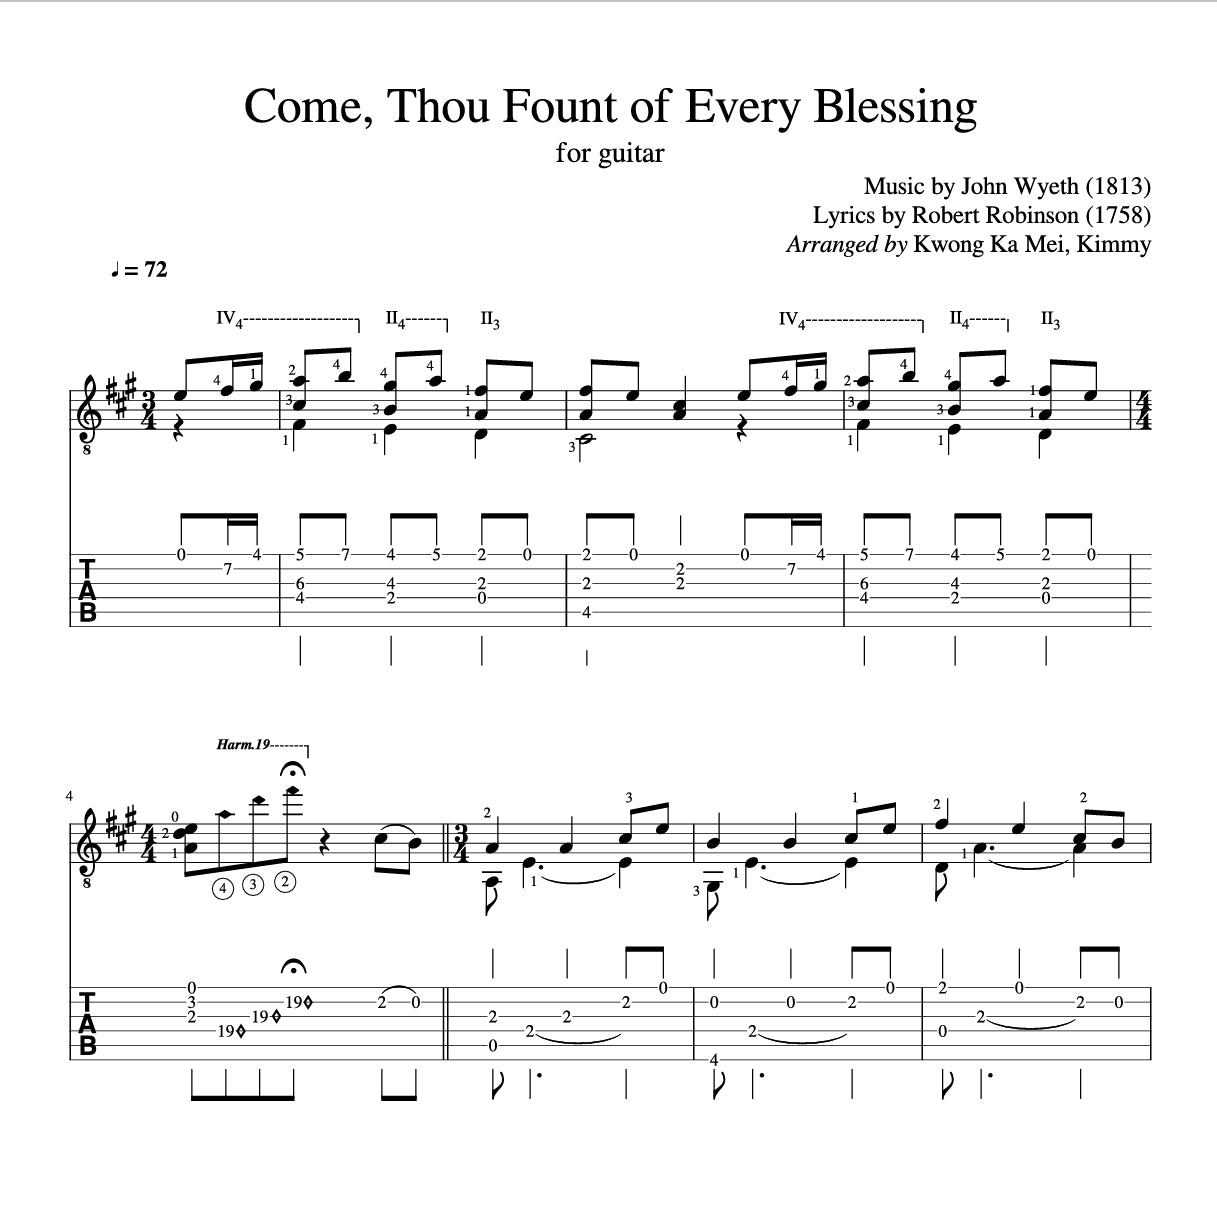 [Sheet+Tab] Come Thou Fount of Every Blessing (Hymn)